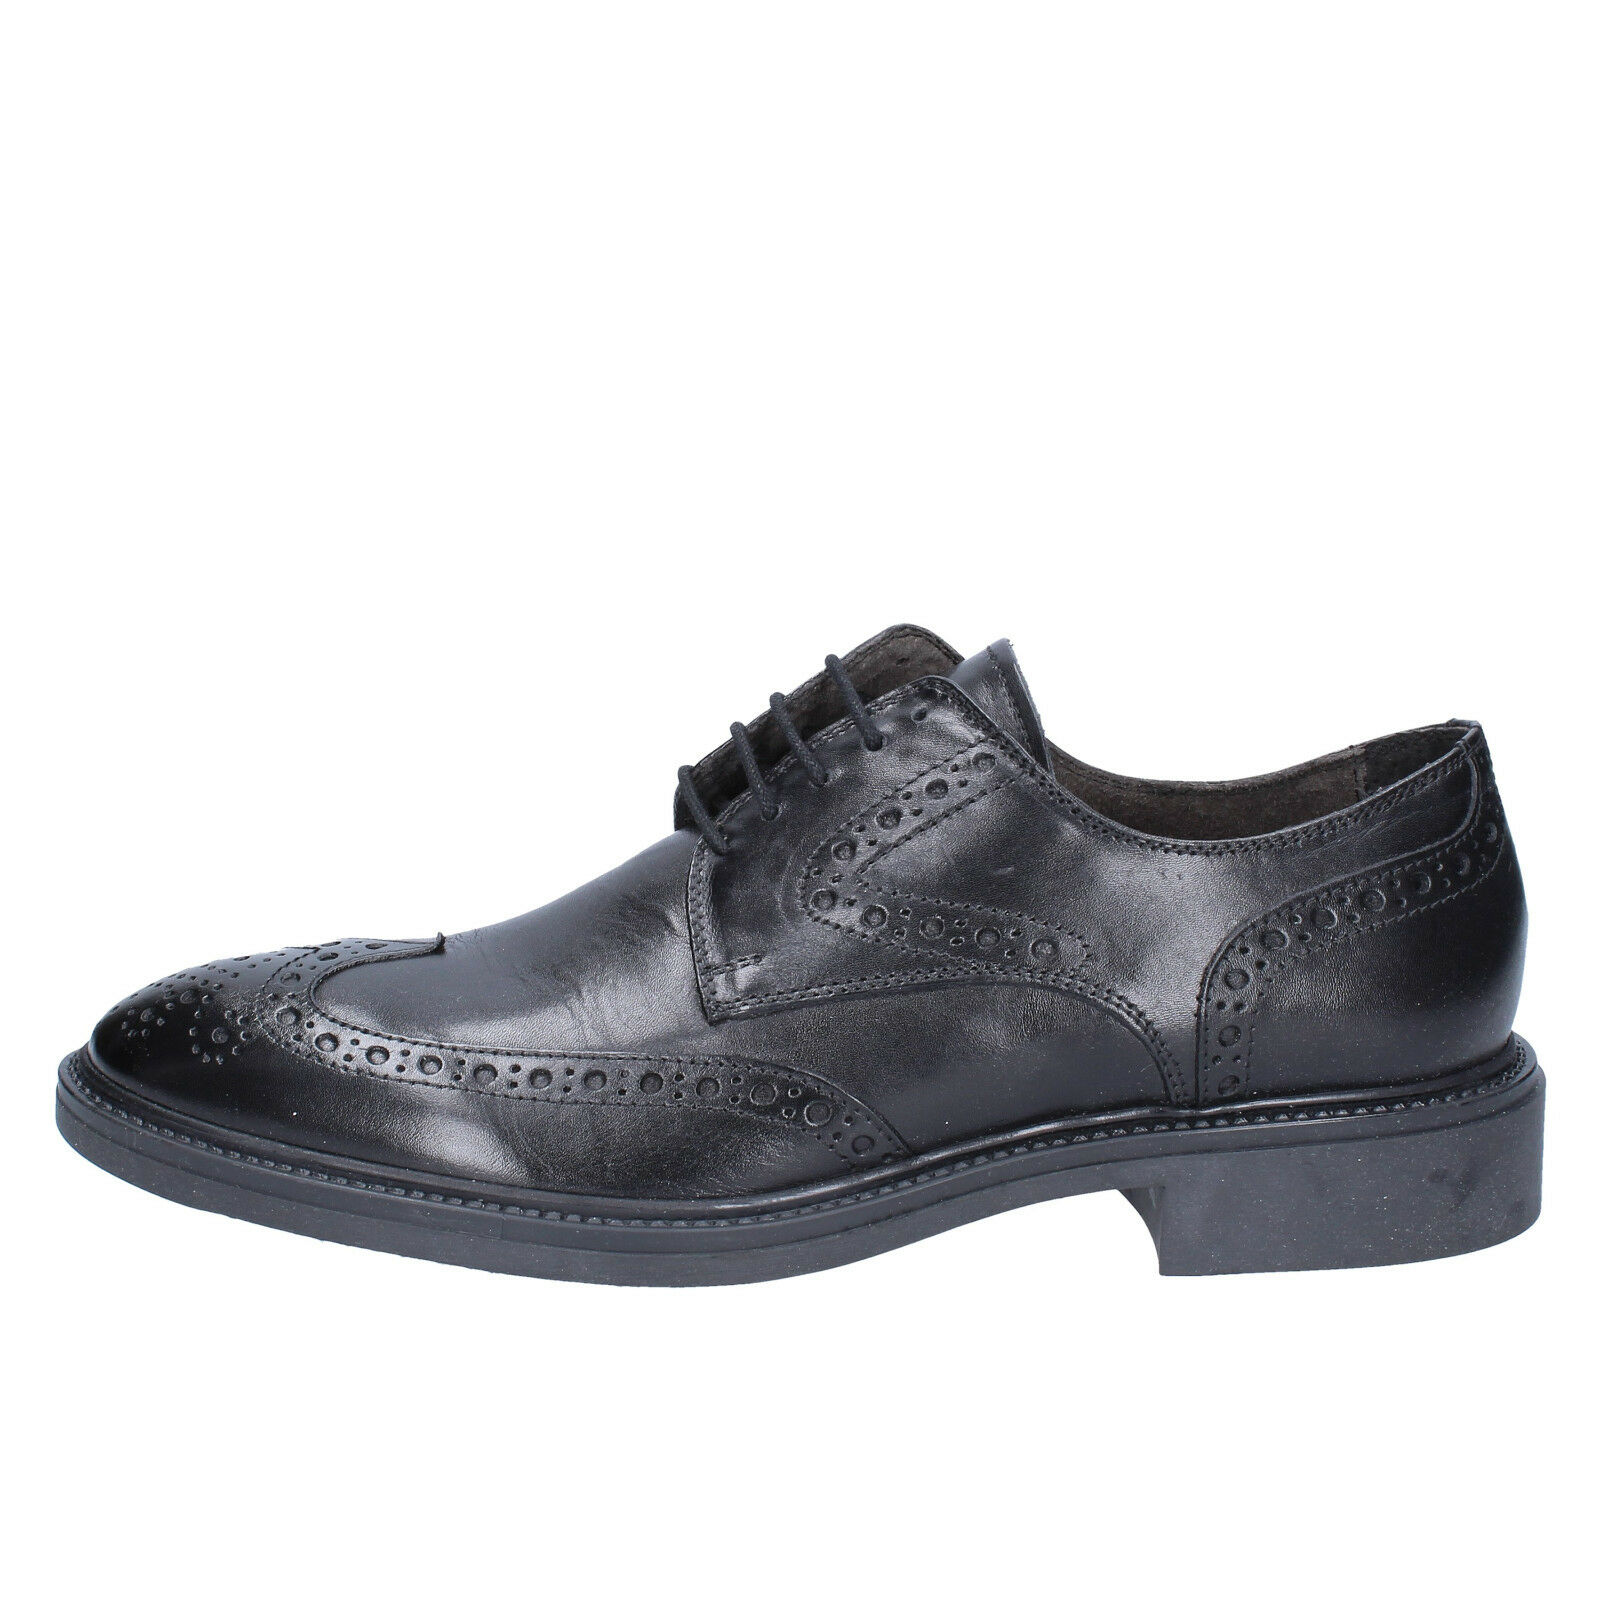 Mens shoes WILLY ADAMS 9 (EU 43) elegant black leather BX584-43